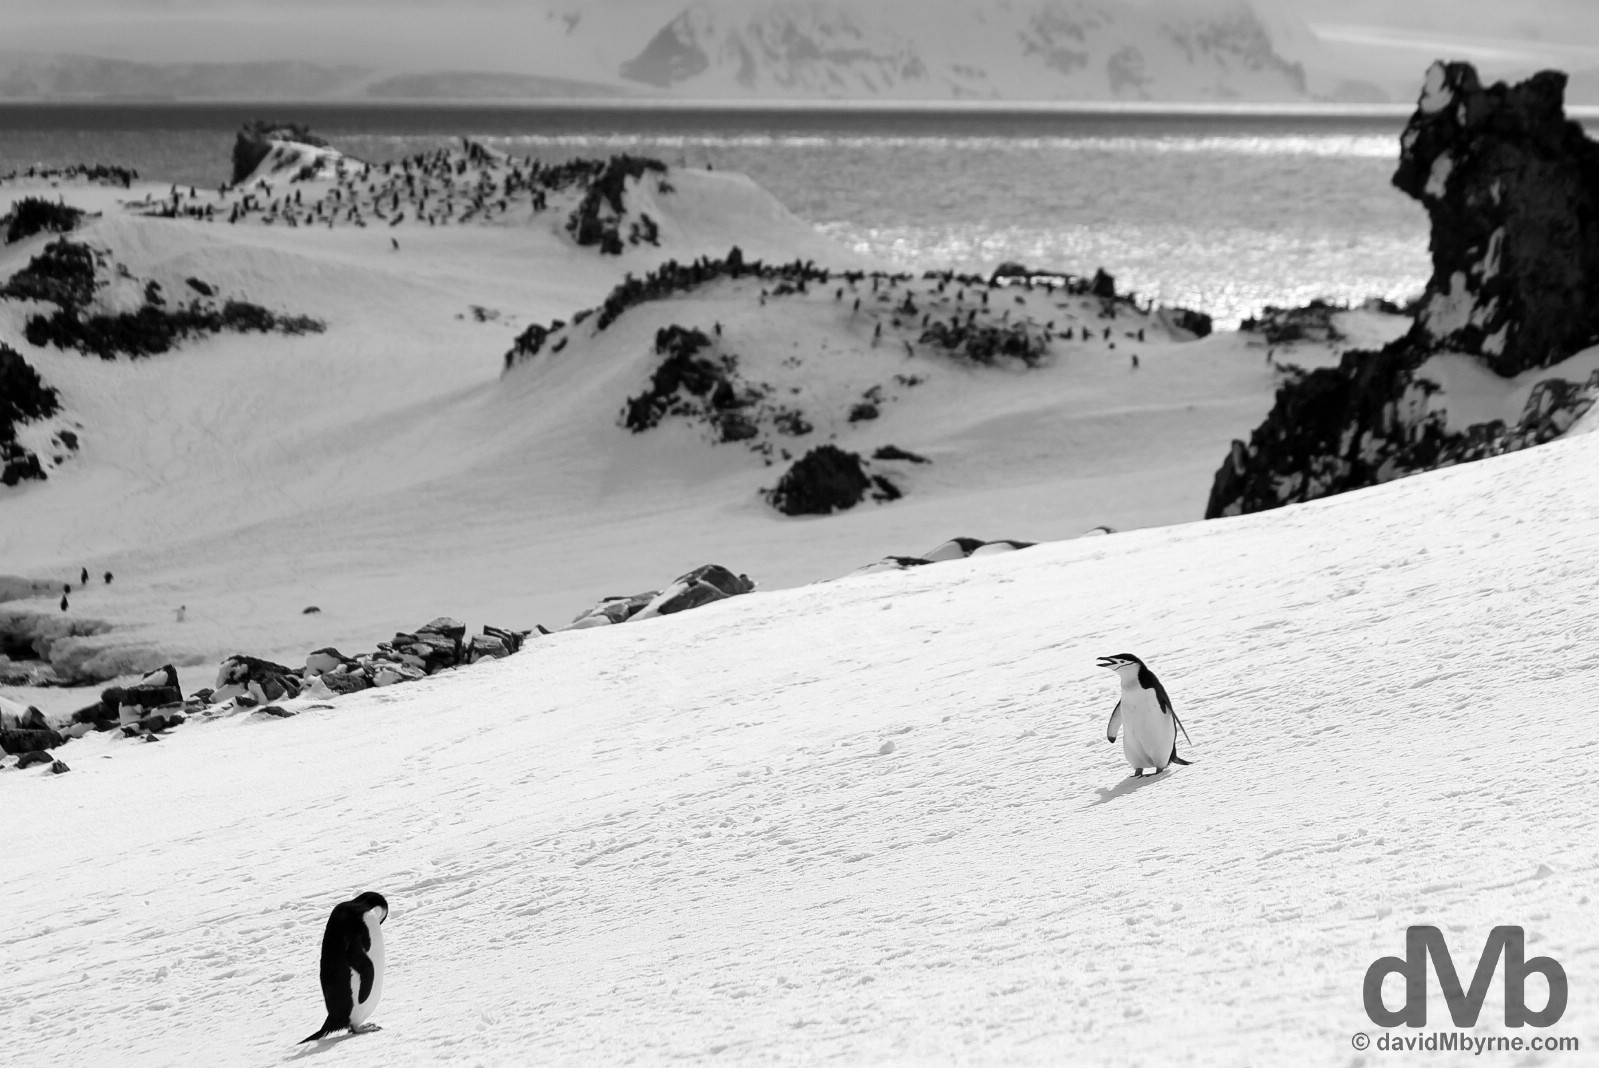 Chinstrap penguins on Half Moon Island, South Shetland Islands, Antarctica. November 29, 2015.